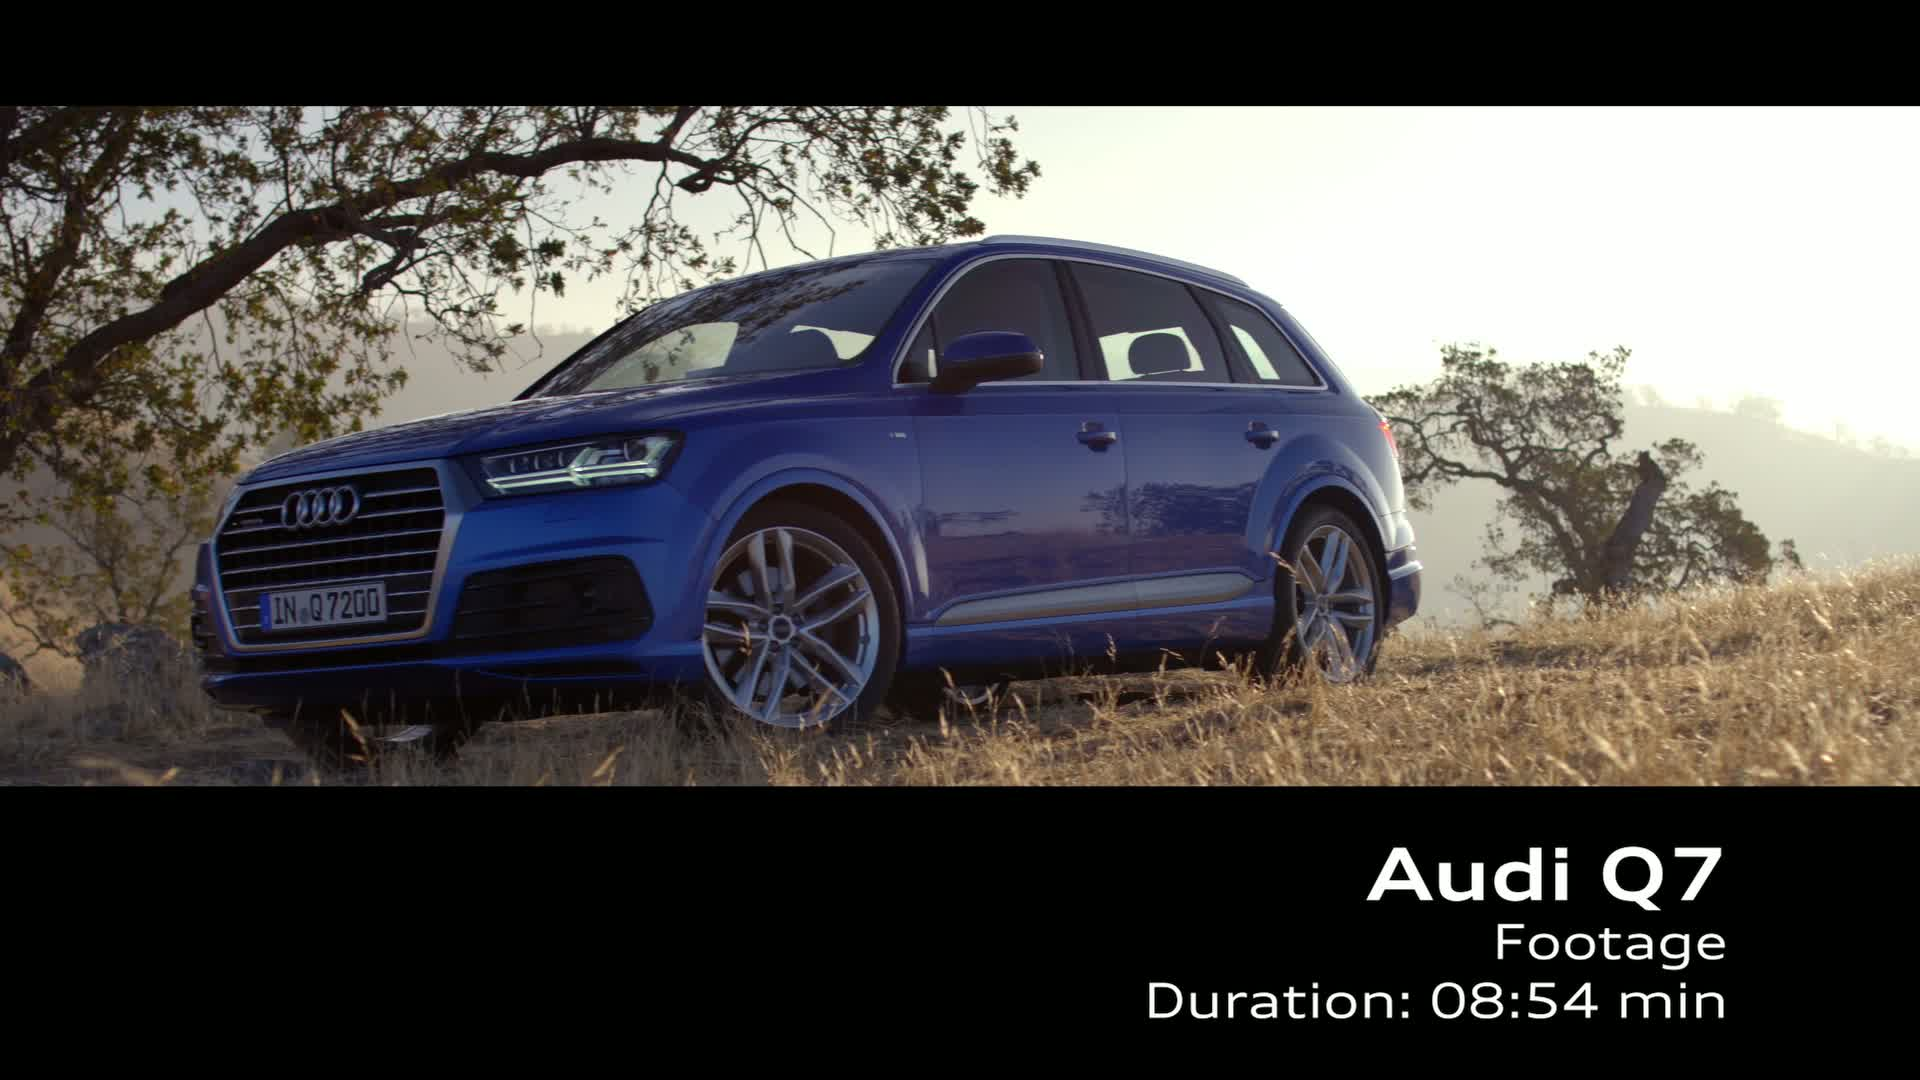 The new Audi Q7 - Footage